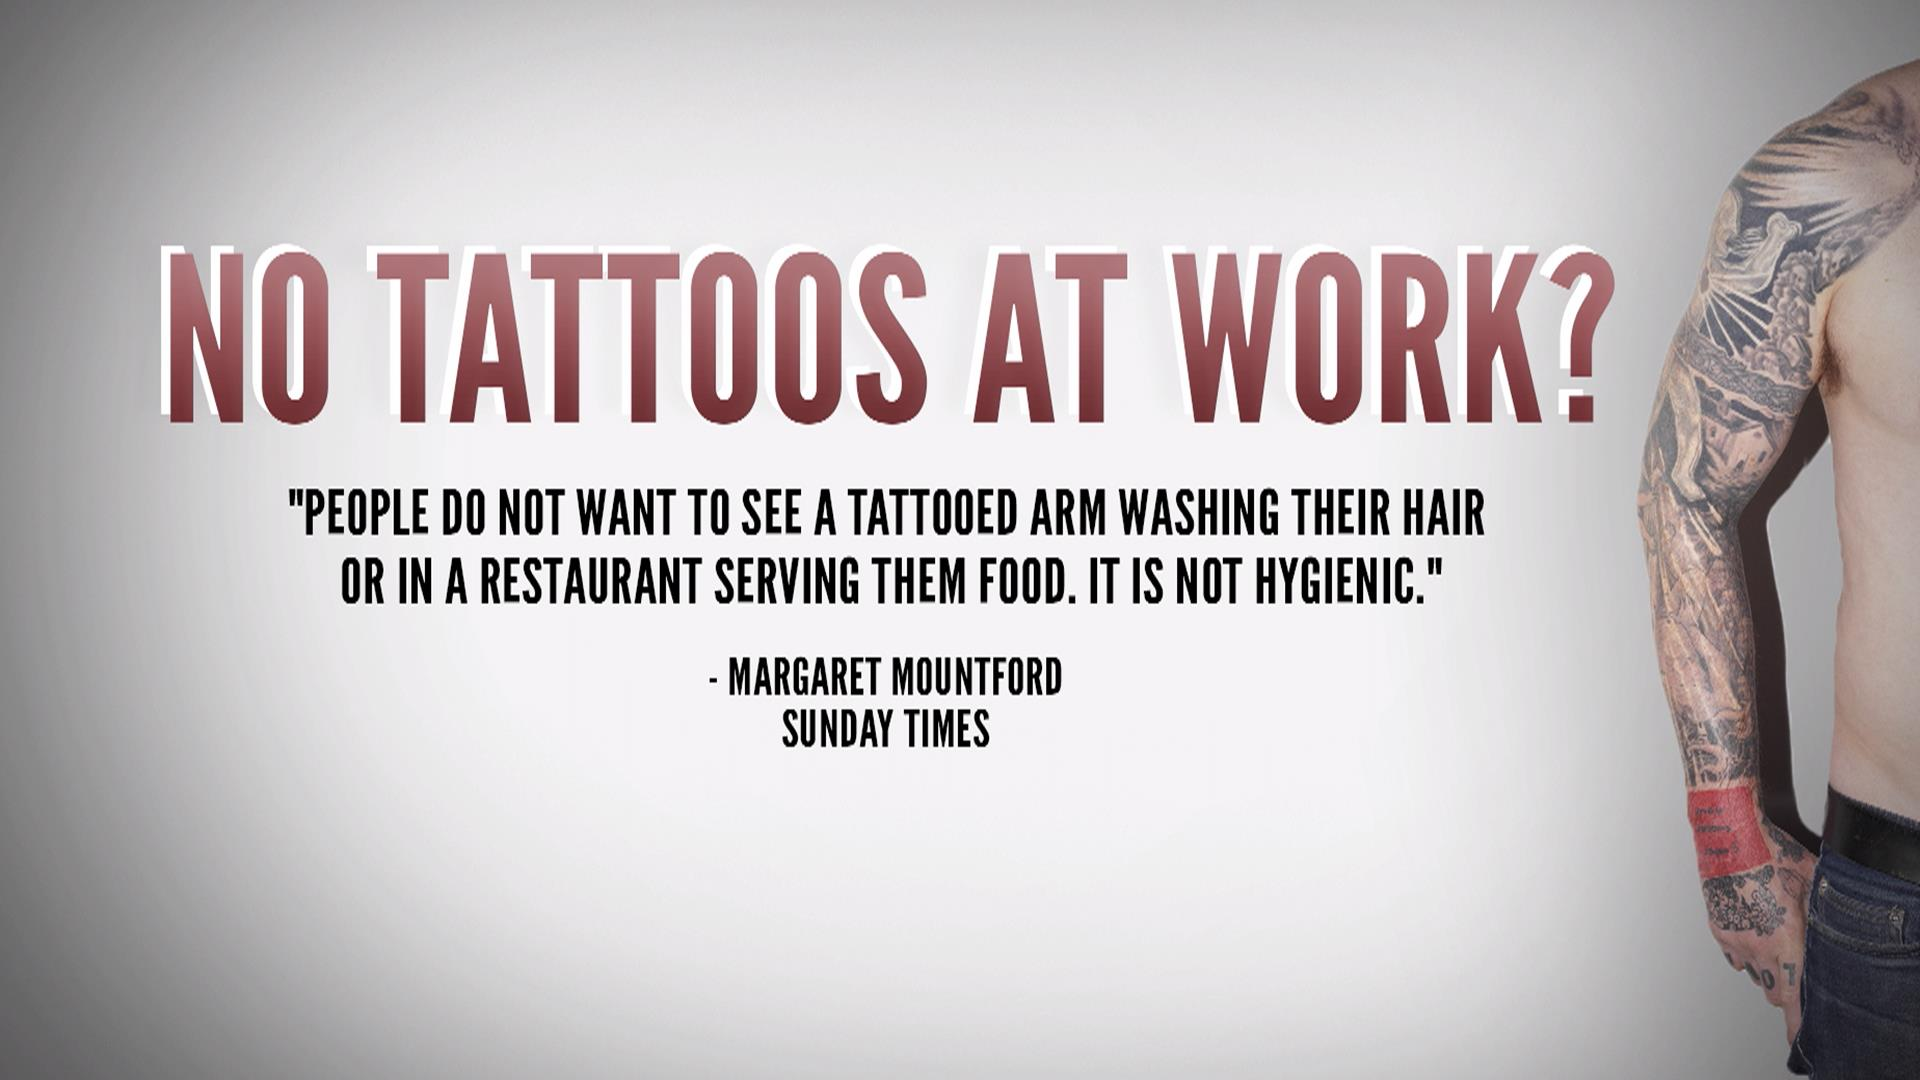 do tattoos help or hurt job applicants